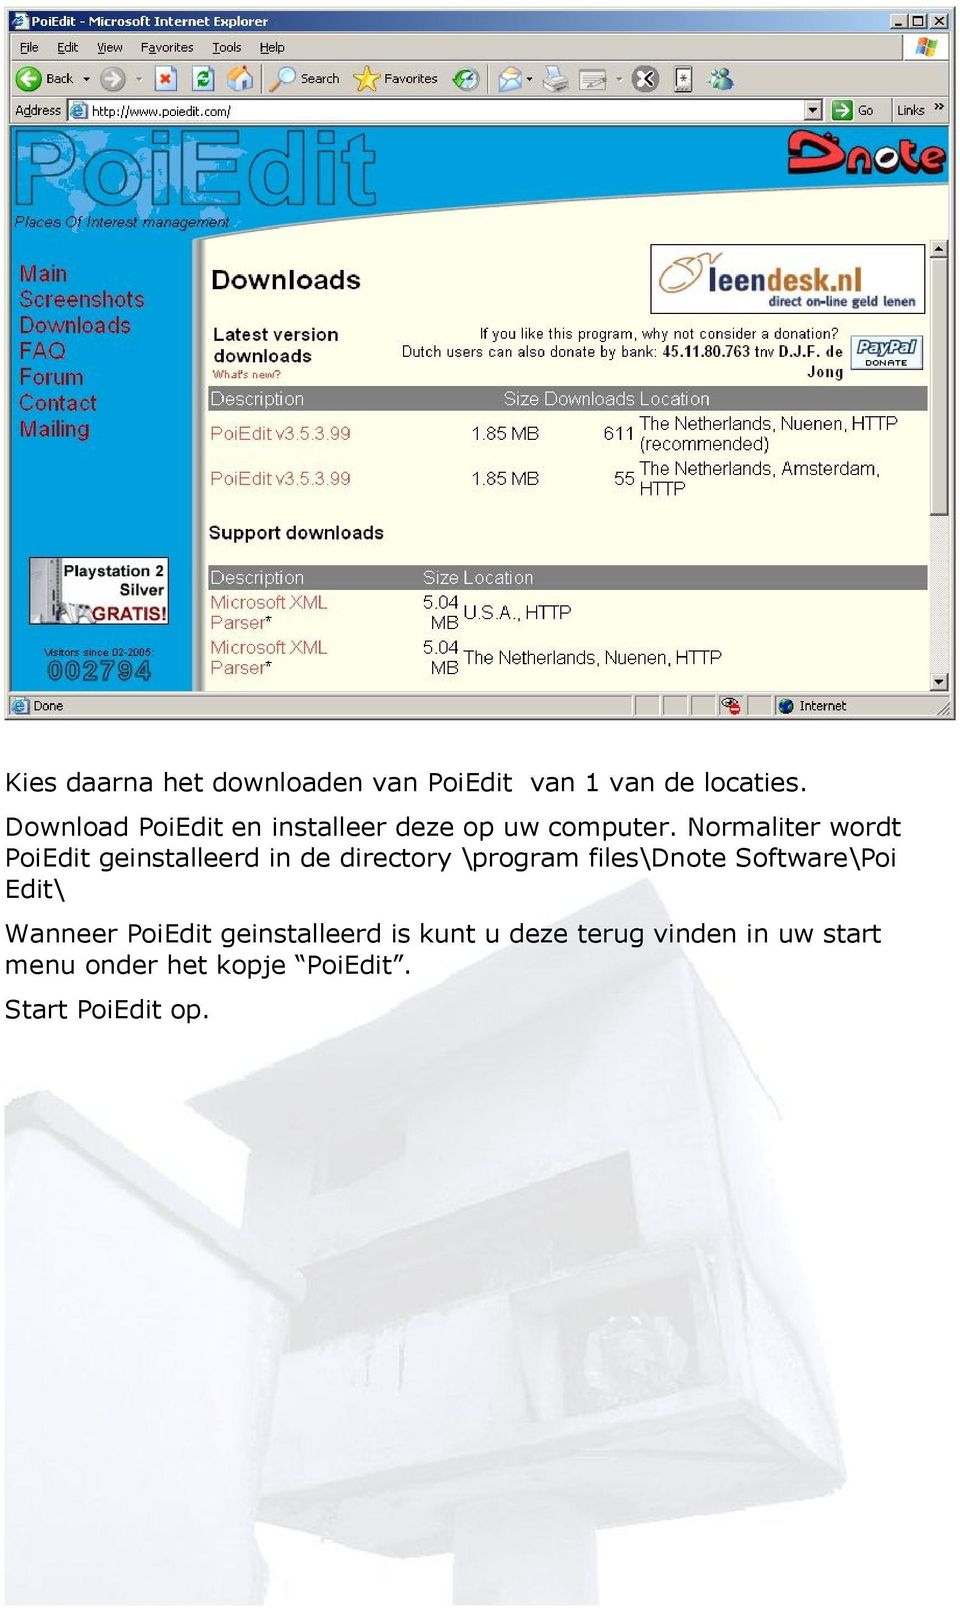 Normaliter wordt PoiEdit geinstalleerd in de directory \program files\dnote